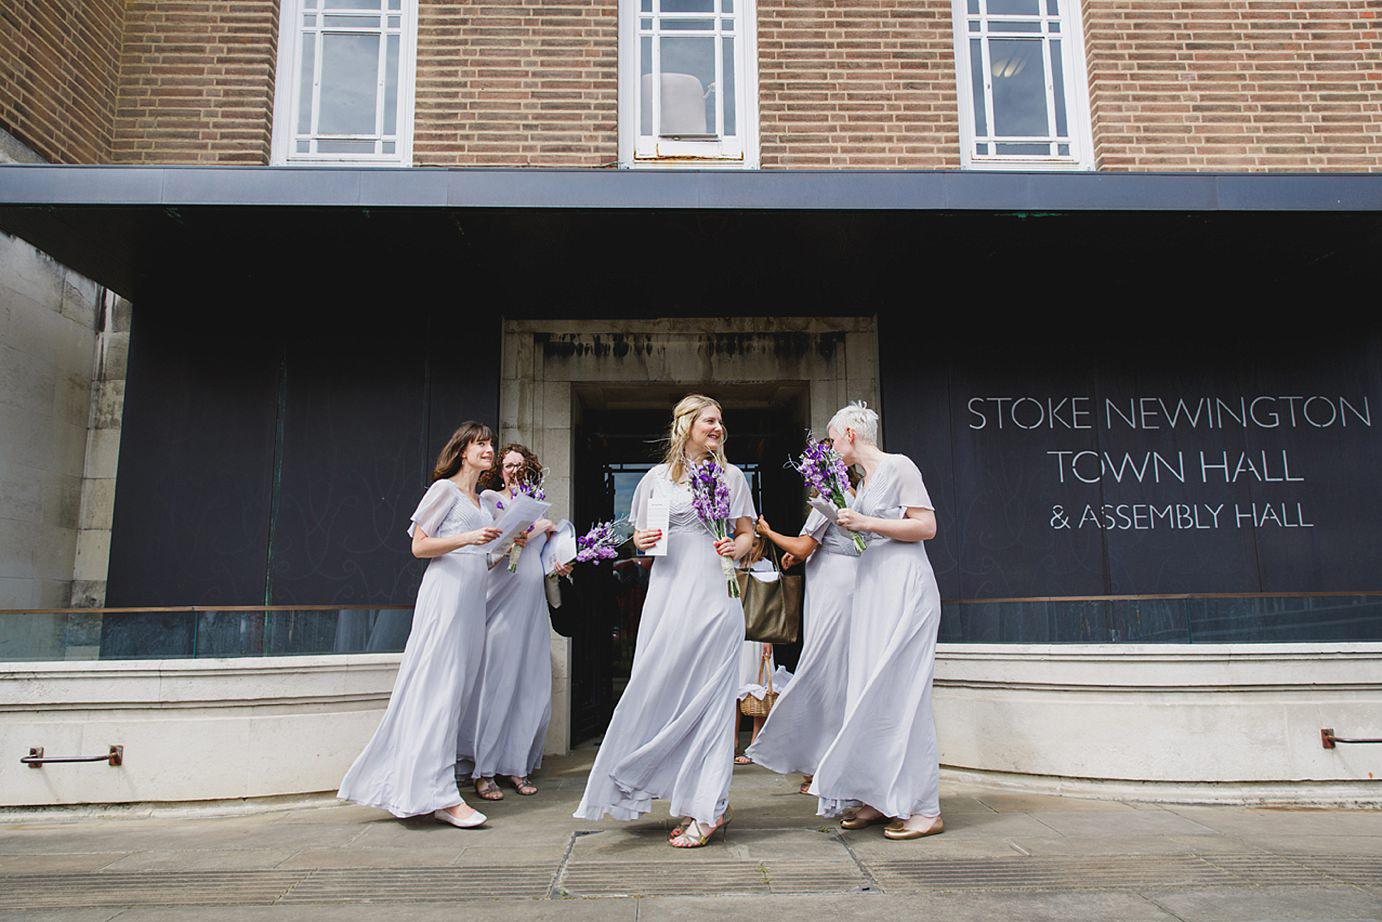 Londesborough pub wedding photography bridesmaids at stoke newington